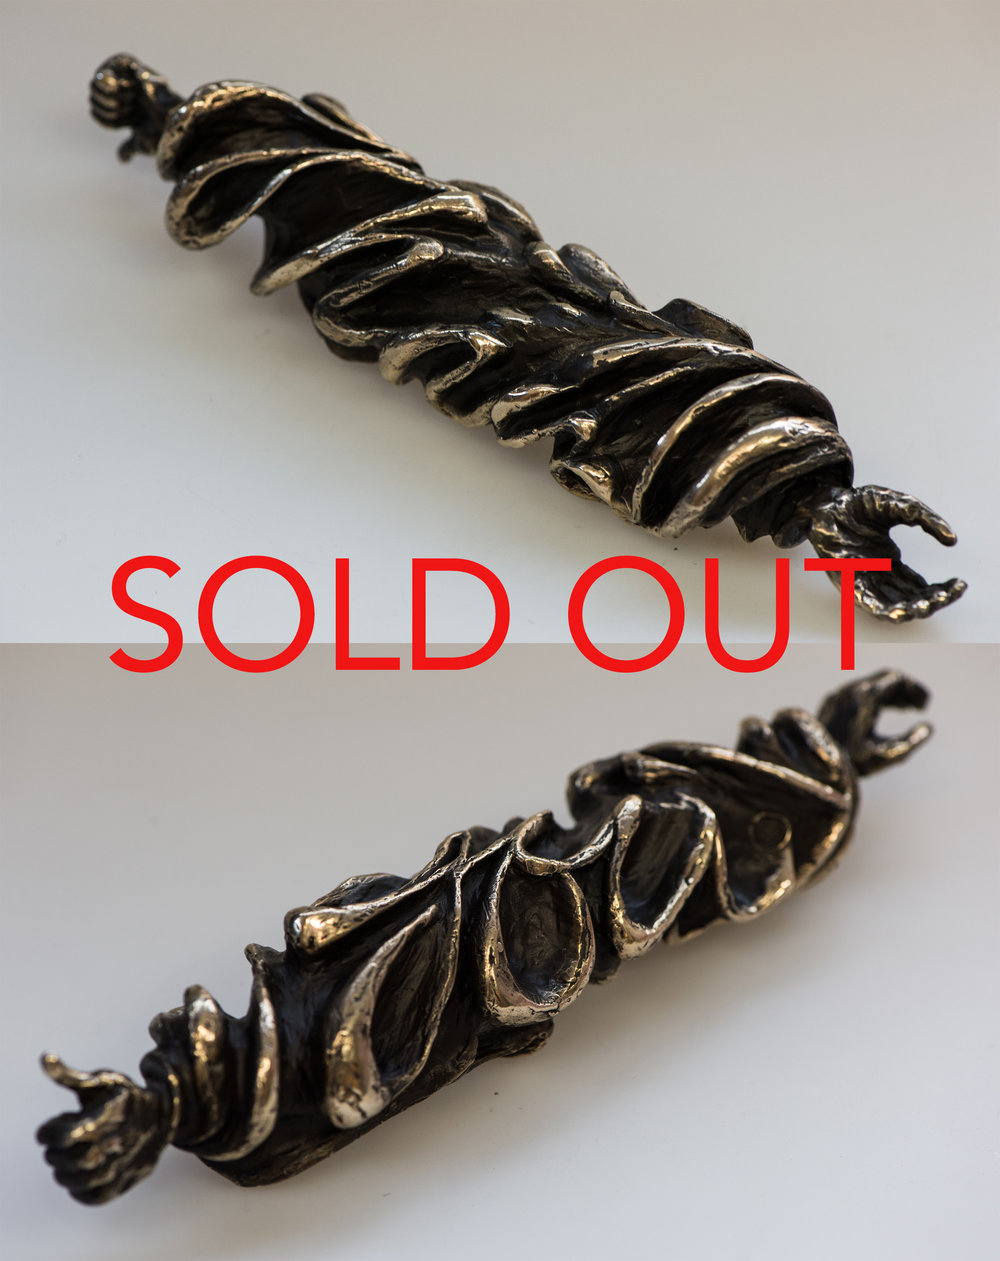 Gratification sold out.jpg